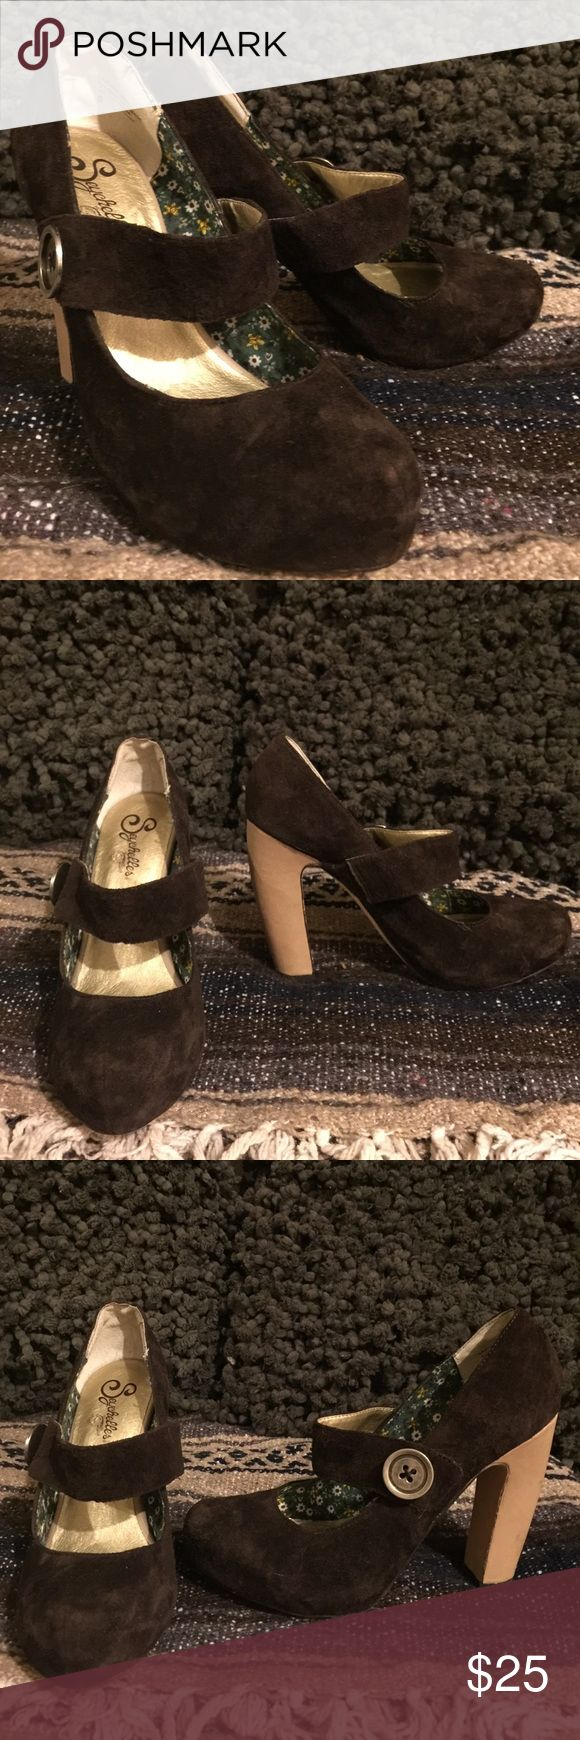 Brown suede Seychelles size 9 platform heels Brown suede Seychelles in very good used condition!!! Hardly any wear and super comfy!!! Size 9 Seychelles Shoes